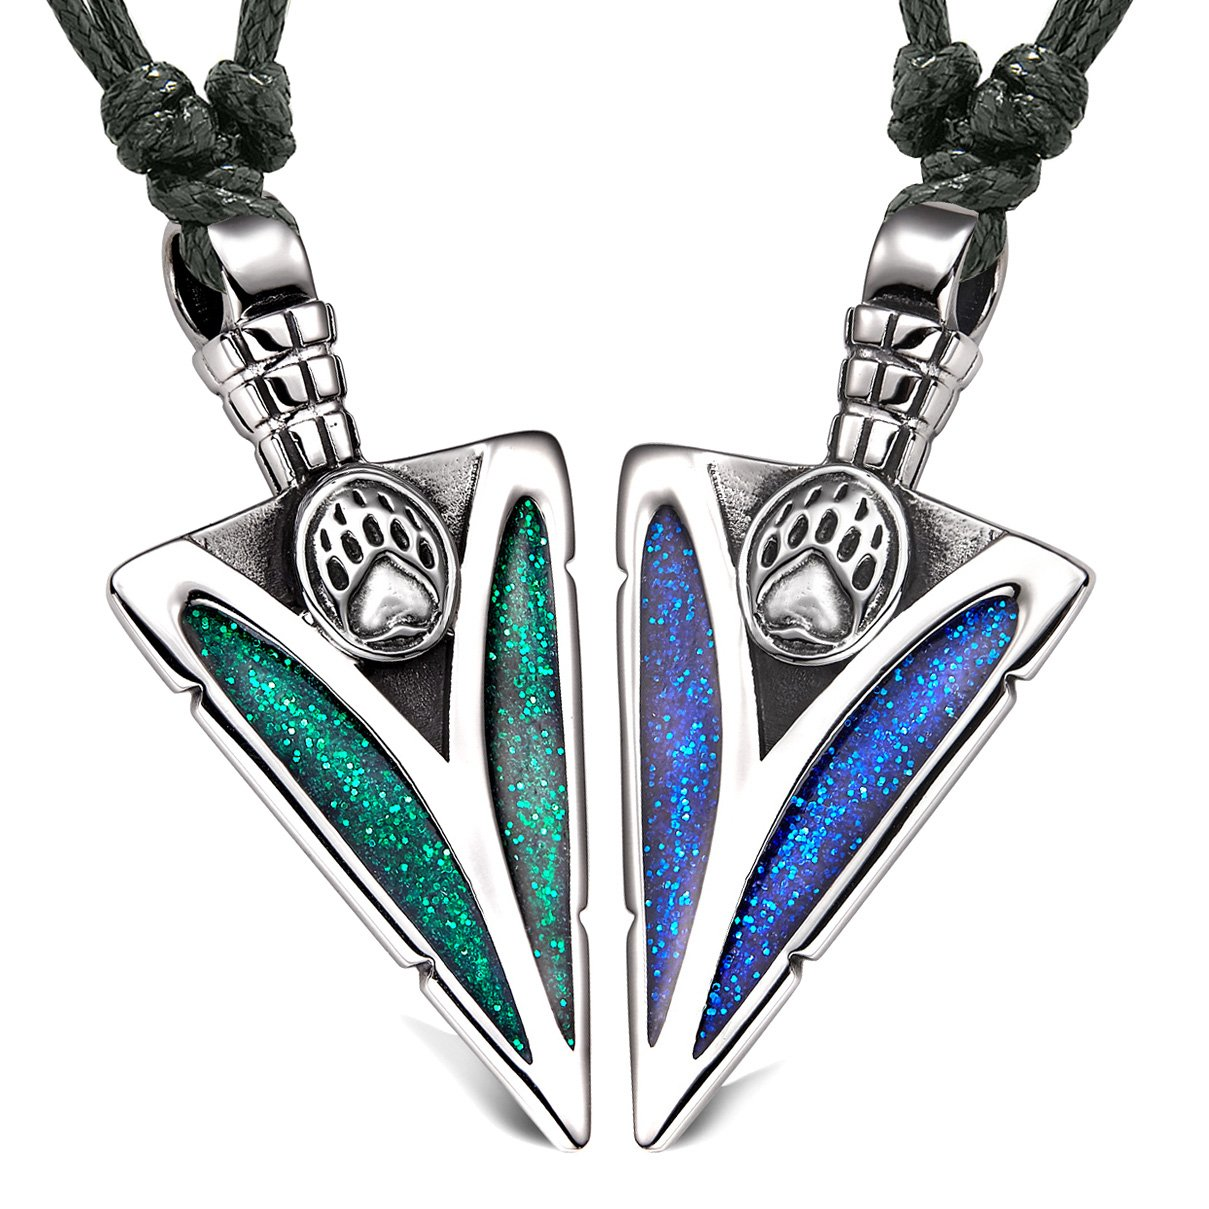 Arrowhead Grizzly Bear Paw Love Couples or BFF Set Amulets Sparkling Royal Blue Green Adjustable Necklaces